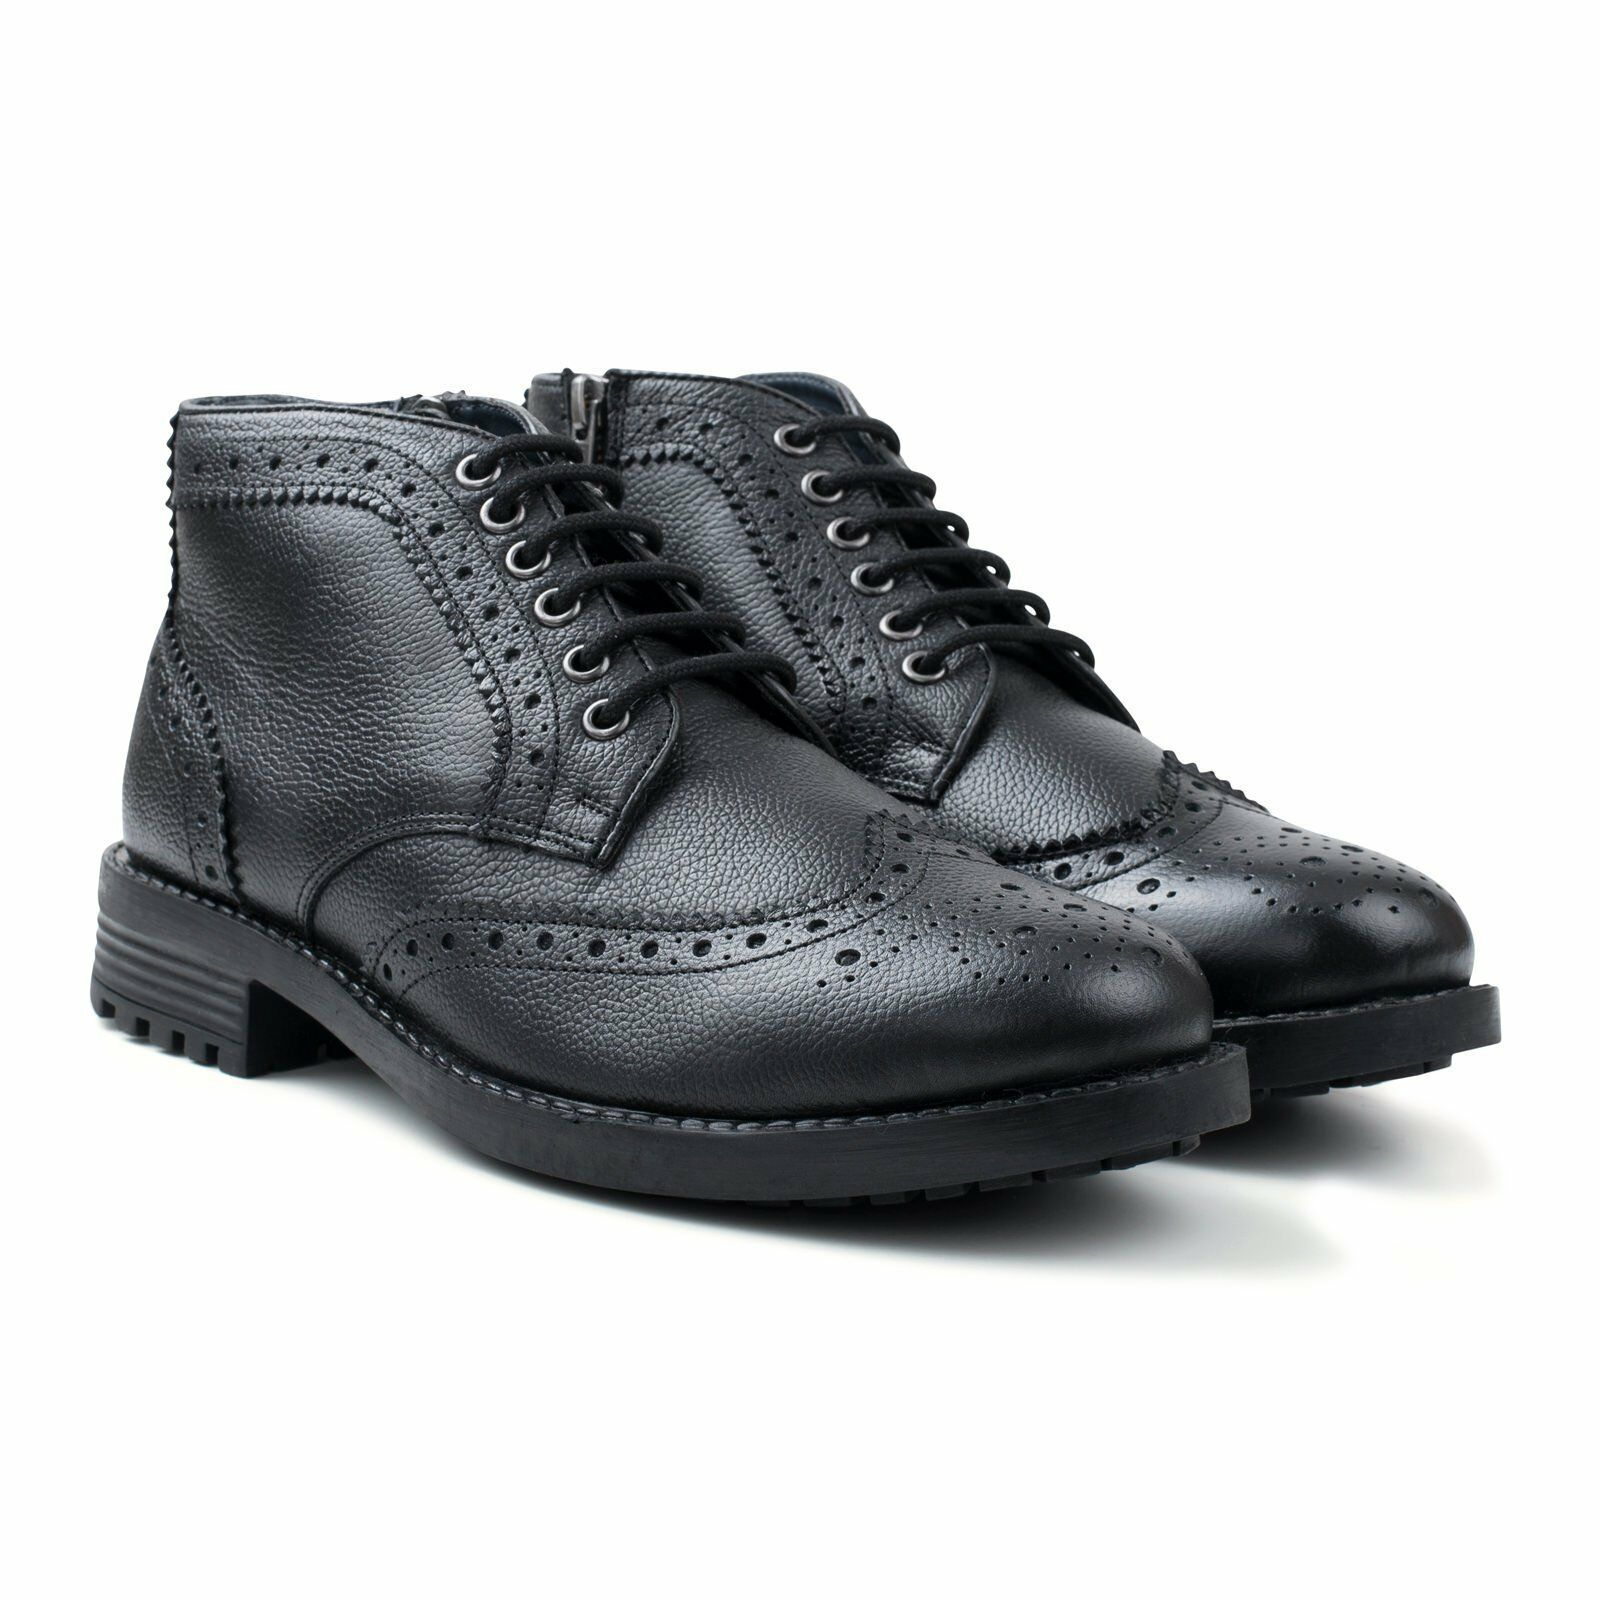 Redfoot Hans Mens Leather Zip & Lace Brogue Work Walking Boots Black UK 8